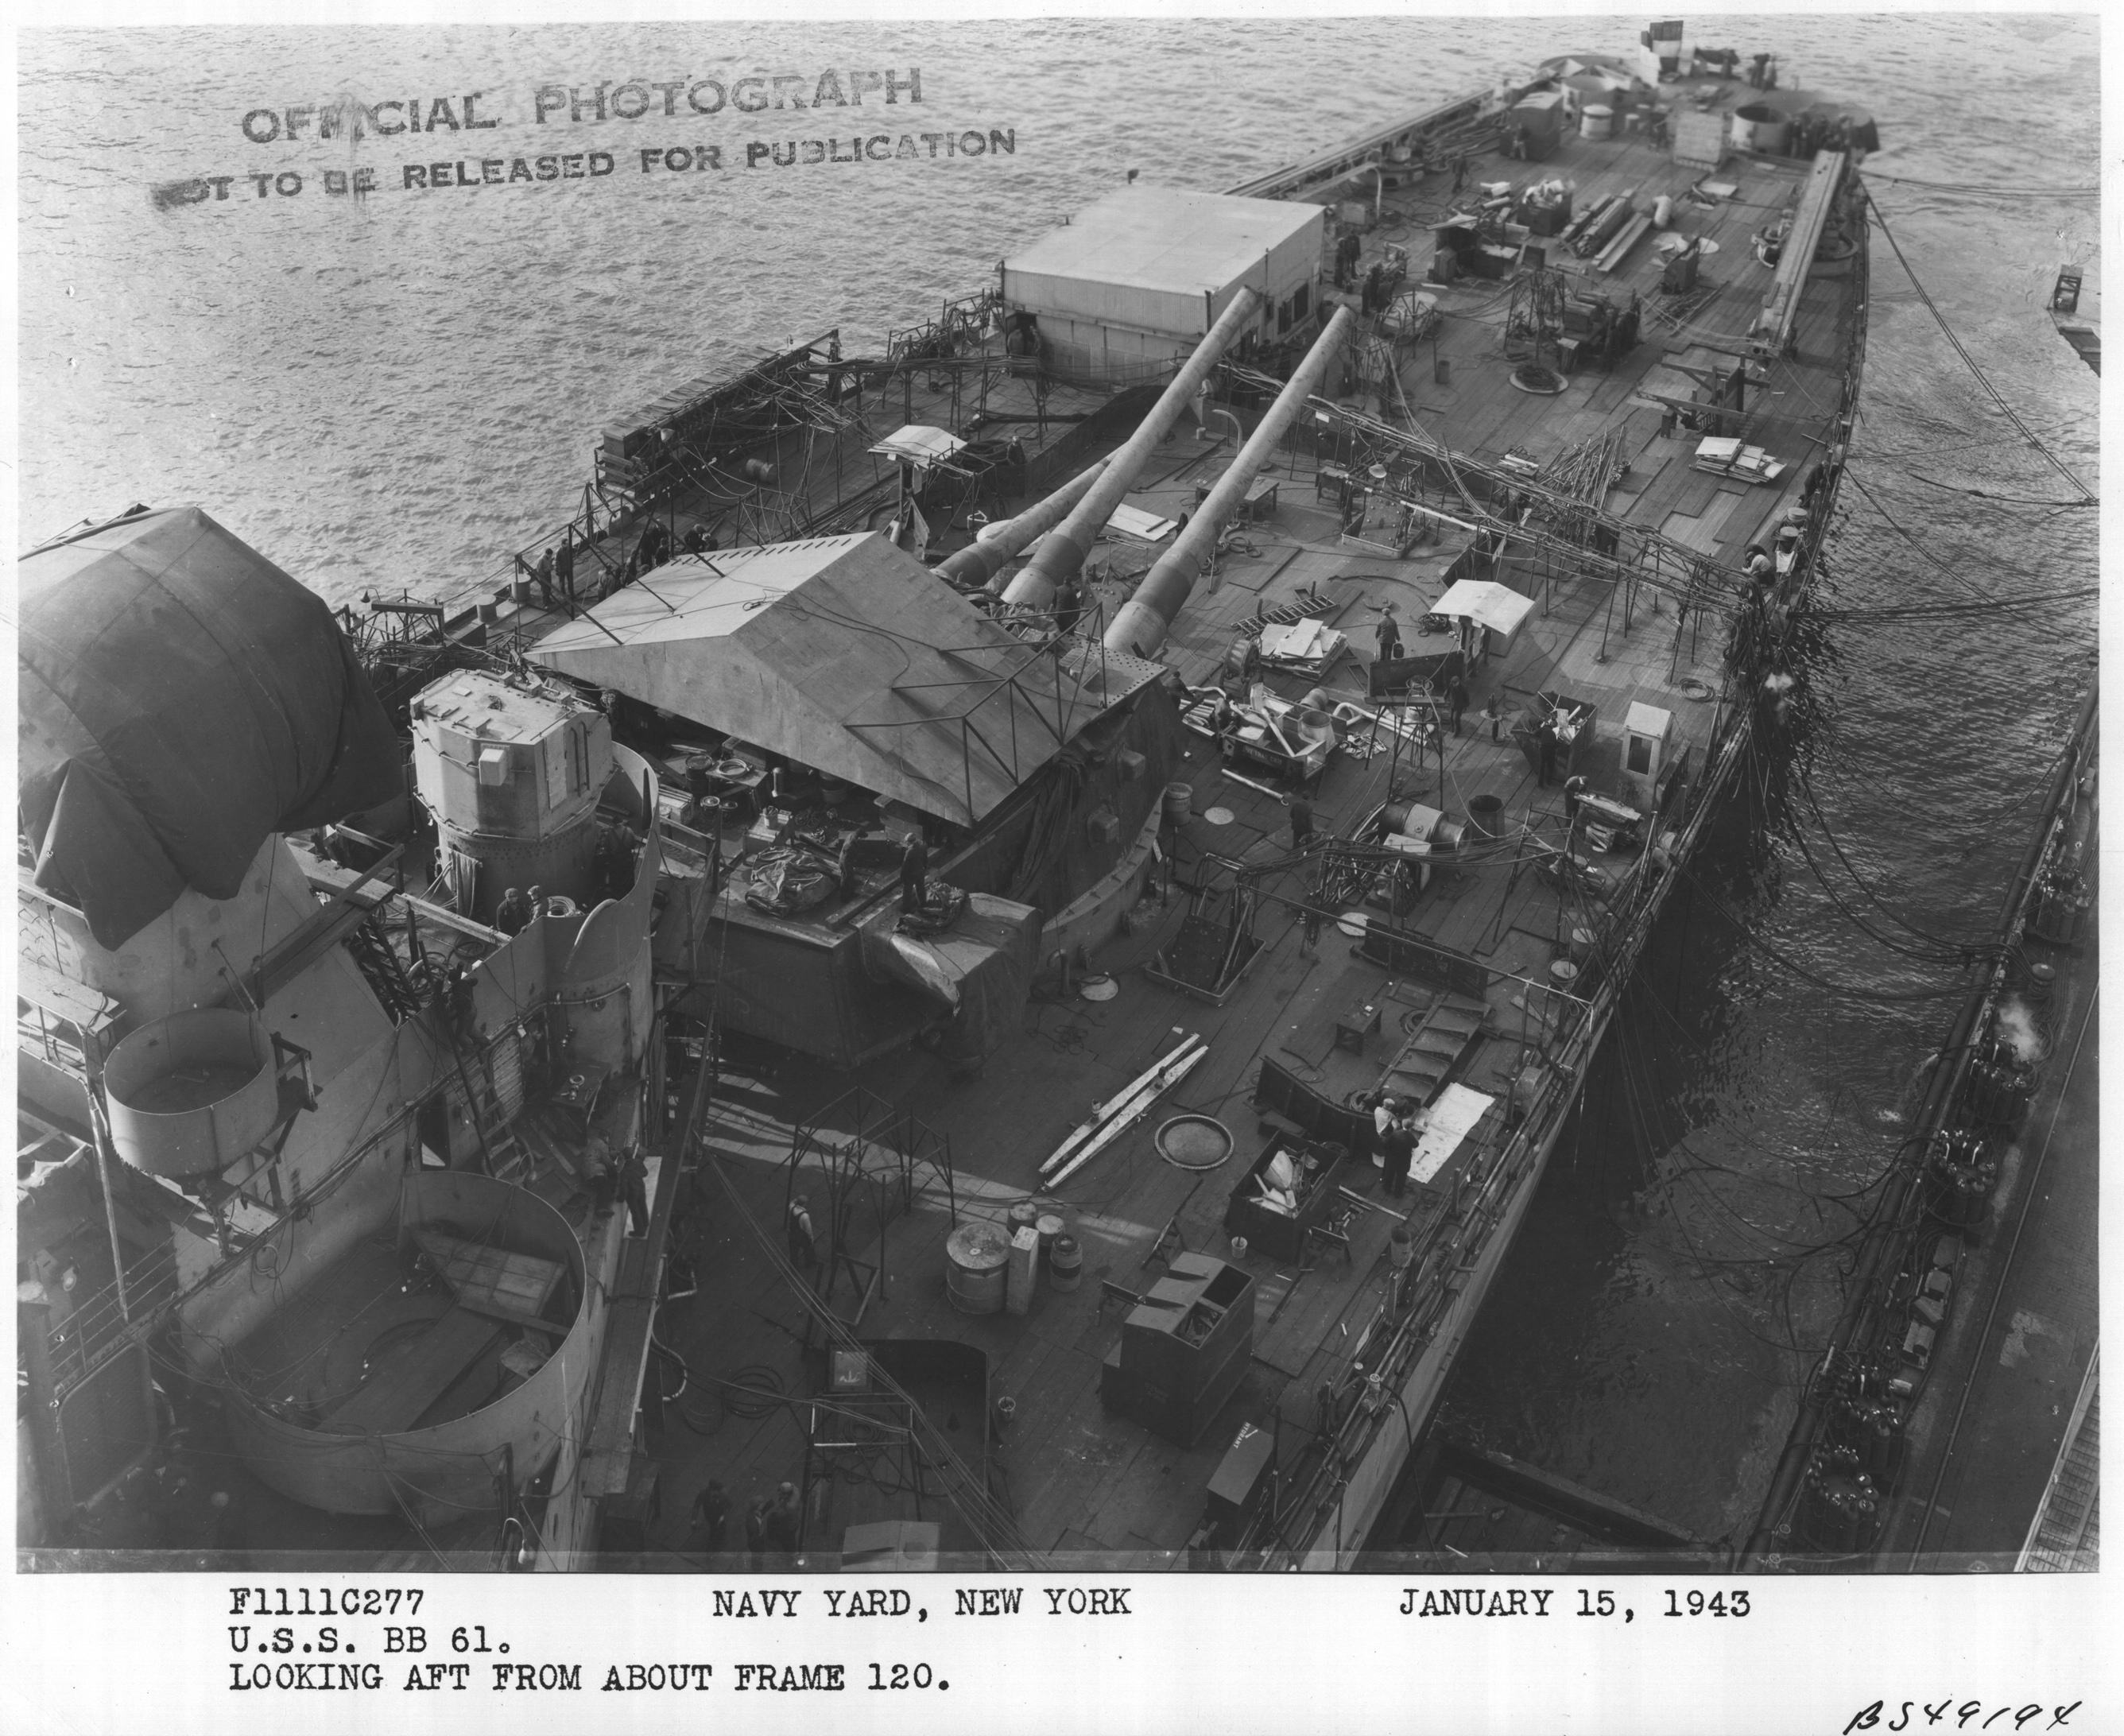 USS Iowa (BB61) in the New York Navy Yard Looking Aft From About Frame 120 , 01-15-1943.jpg